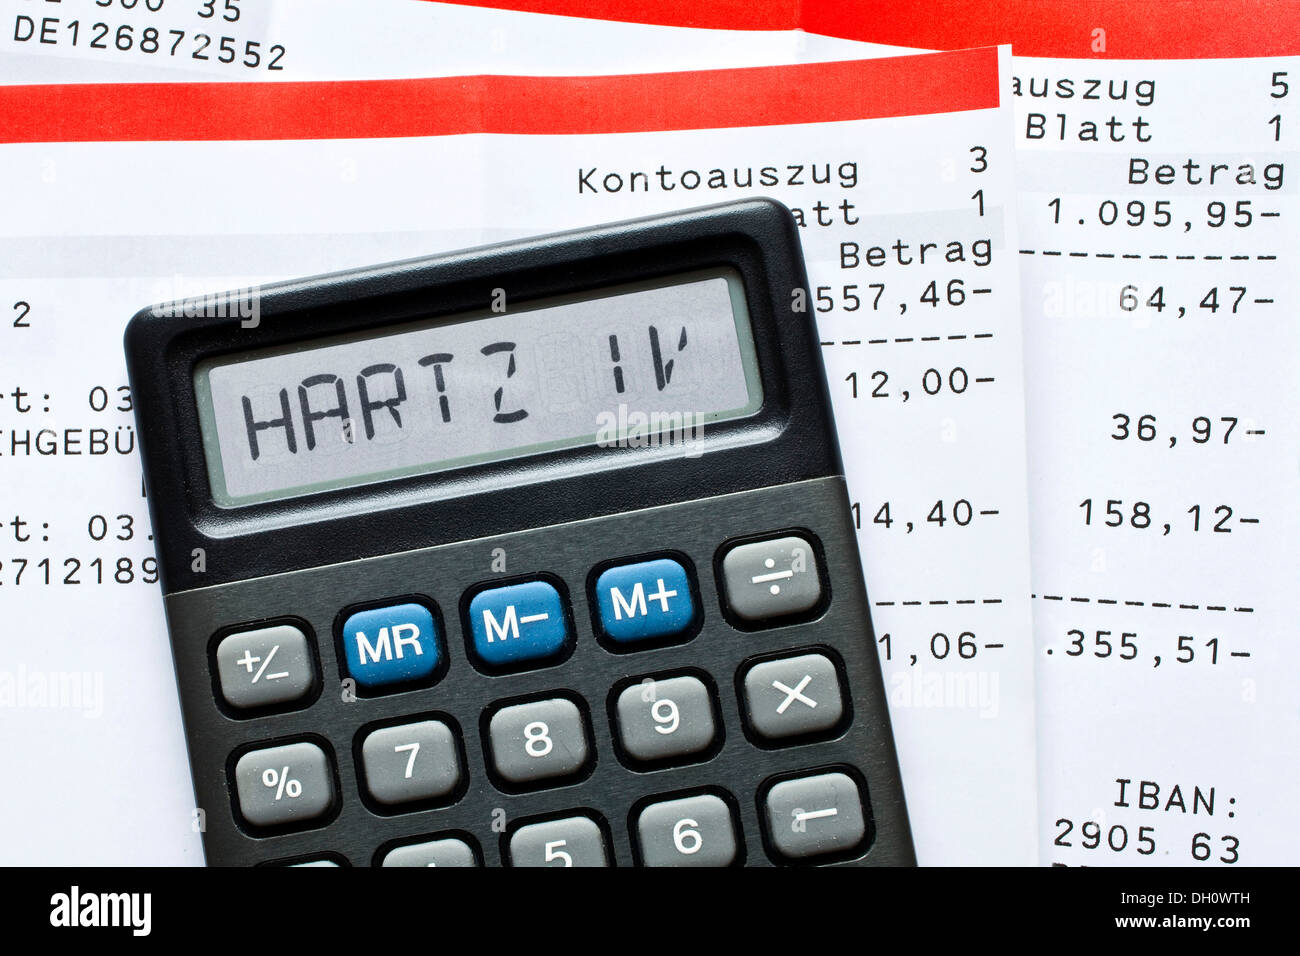 Calculator with the term 'Hartz IV' in the display and bank statements, Germany - Stock Image